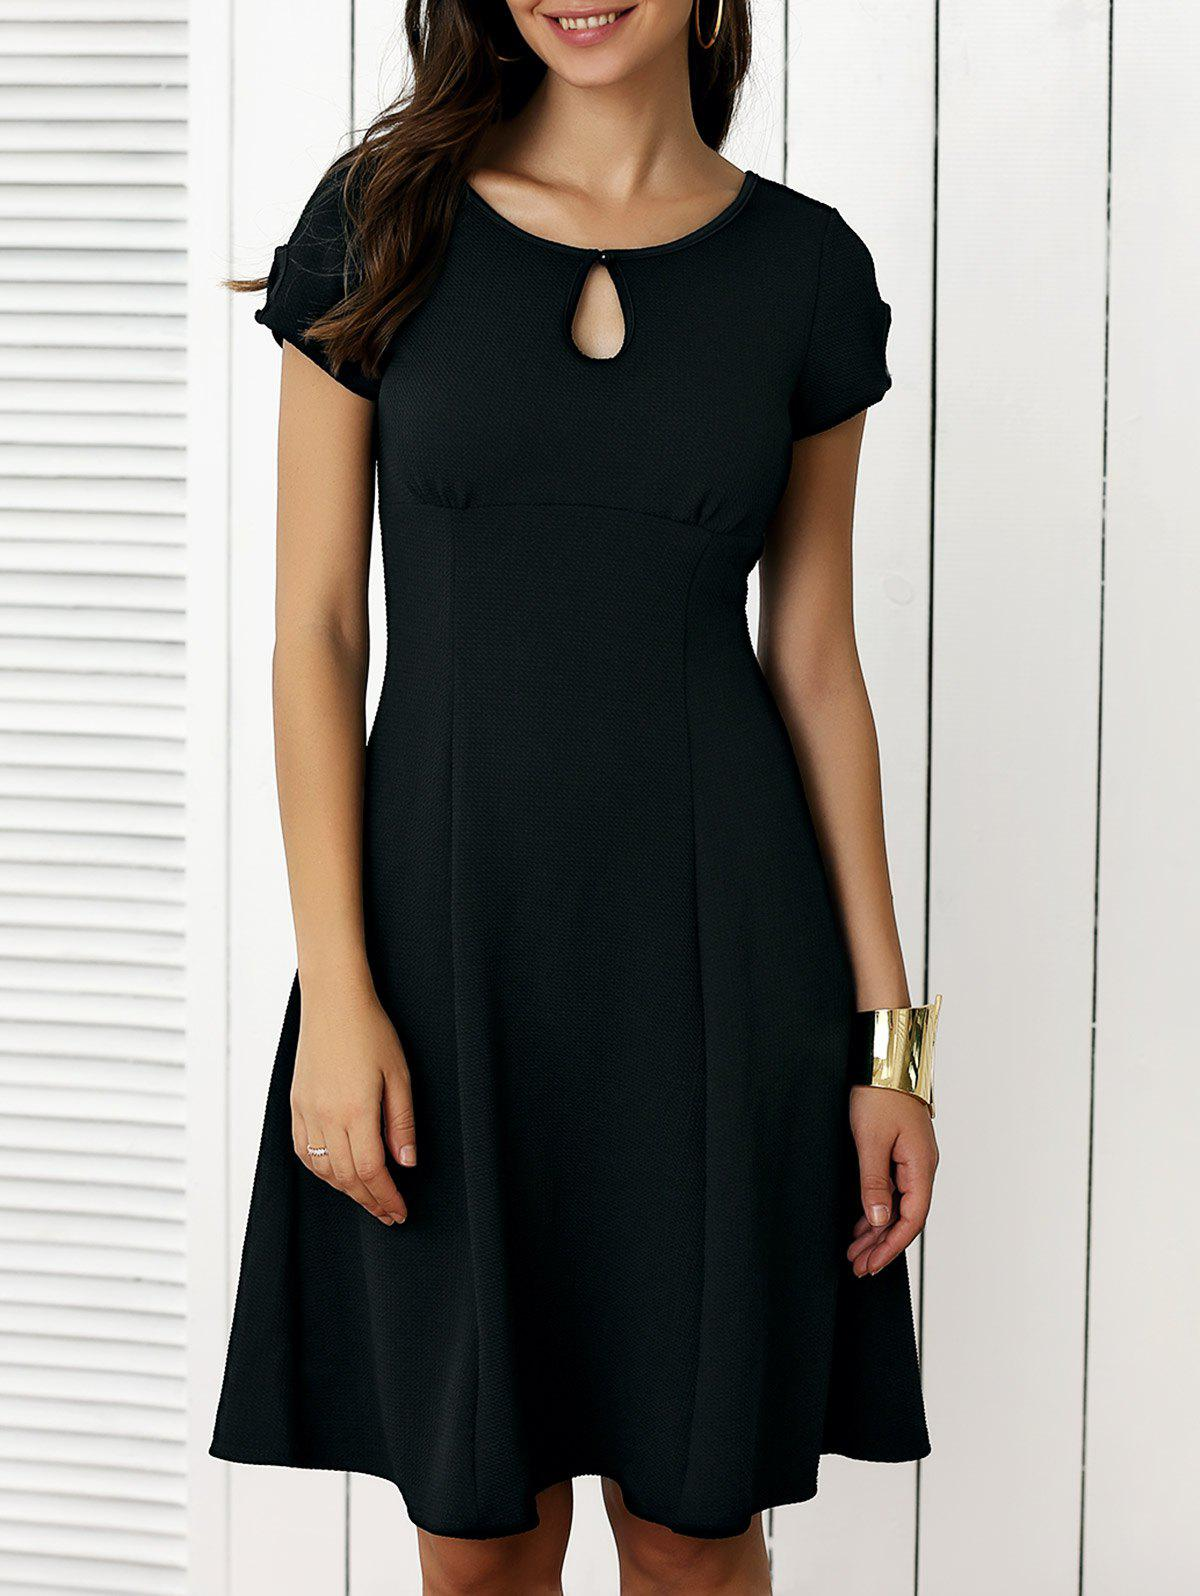 Keyhole Short Sleeve Cut Out Fit and Flare Dress - BLACK L